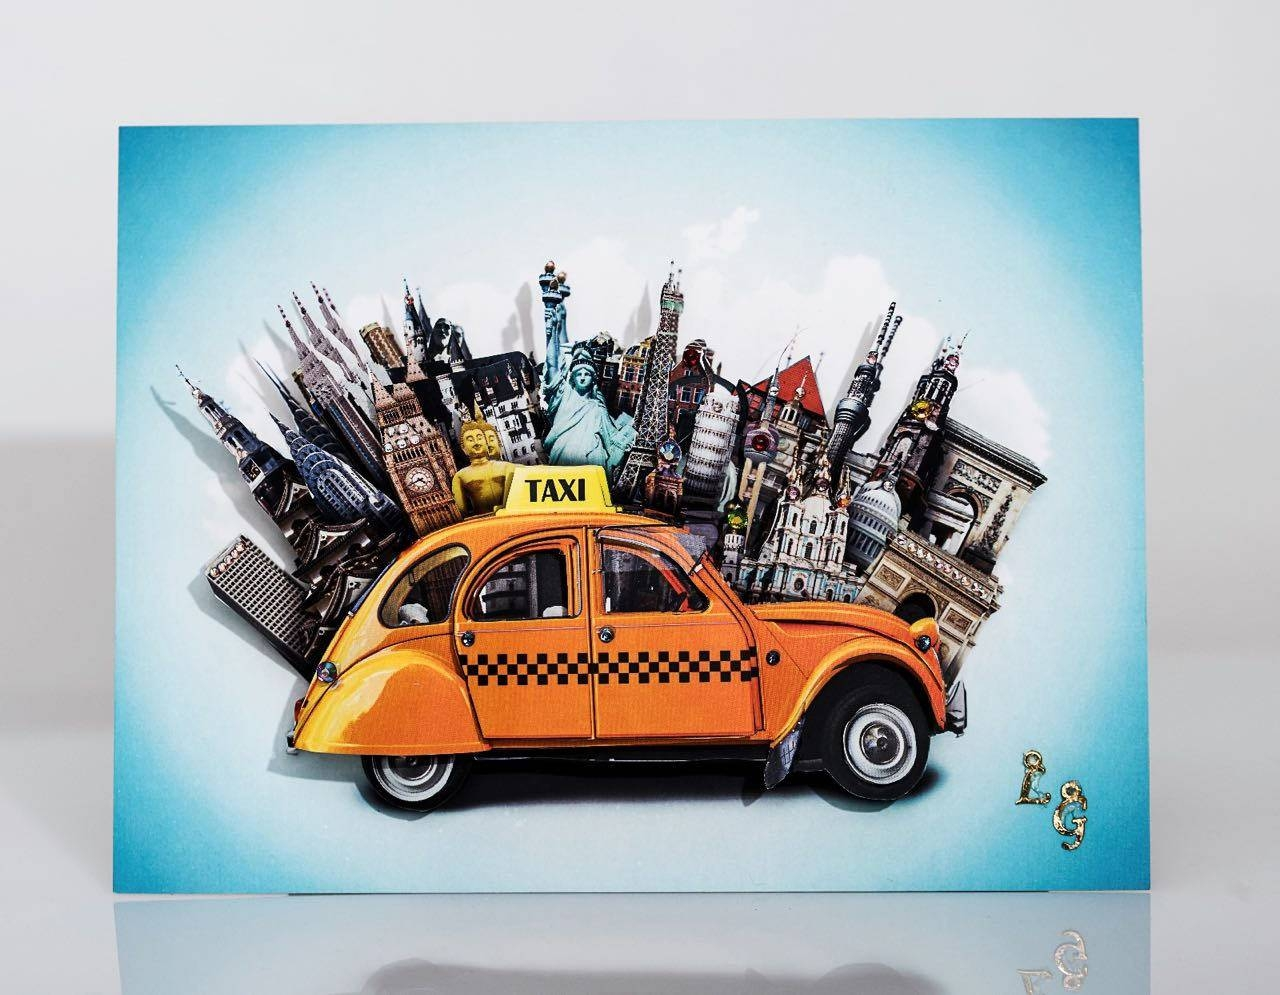 Cityscape, New York, 3D Wall Art, Paper Art, Travel, Taxi, Wall Pertaining To Most Current New York 3D Wall Art (View 3 of 20)